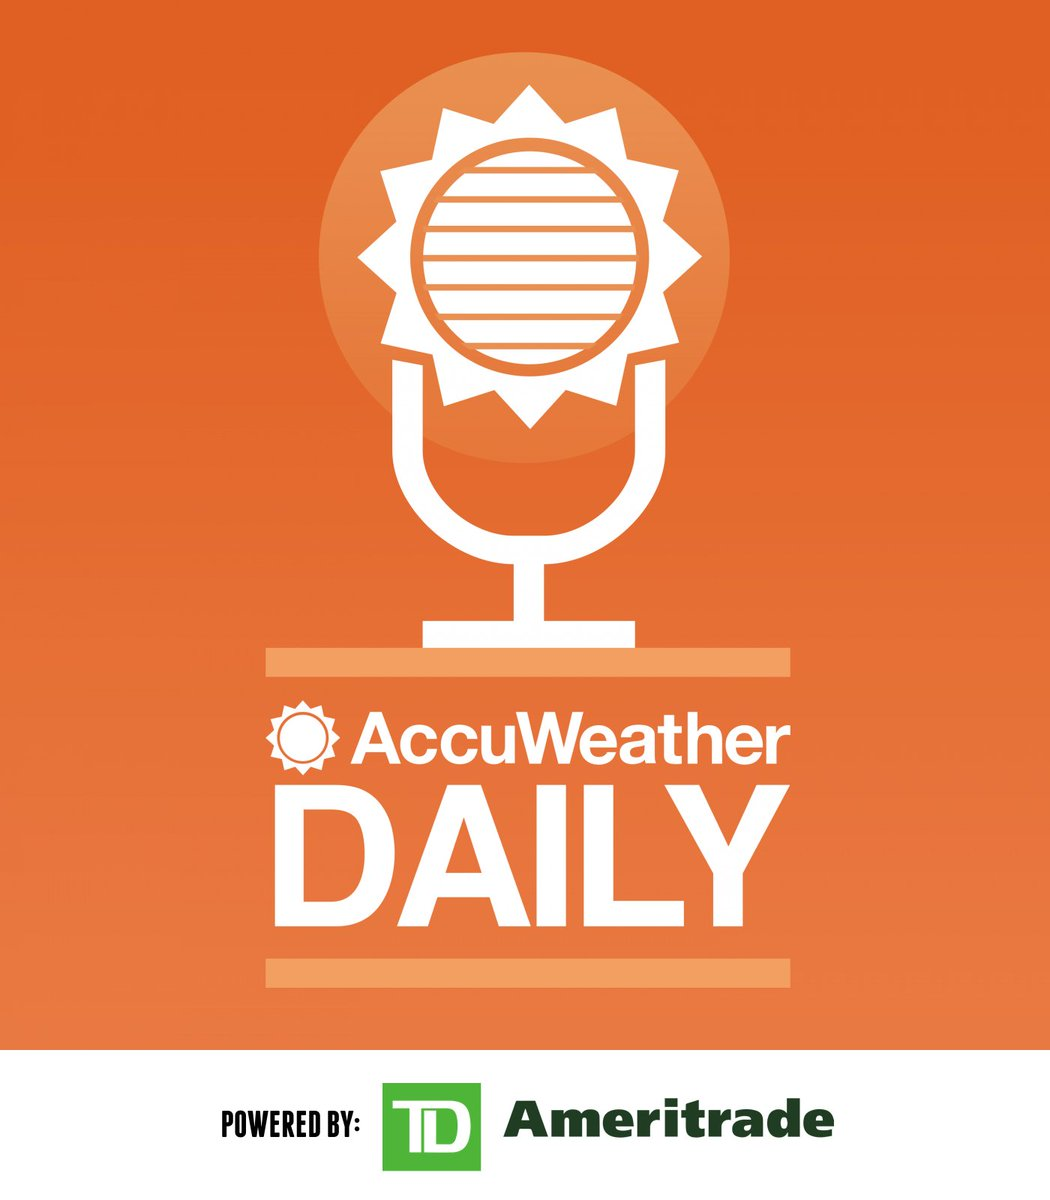 AccuWeather on Twitter: